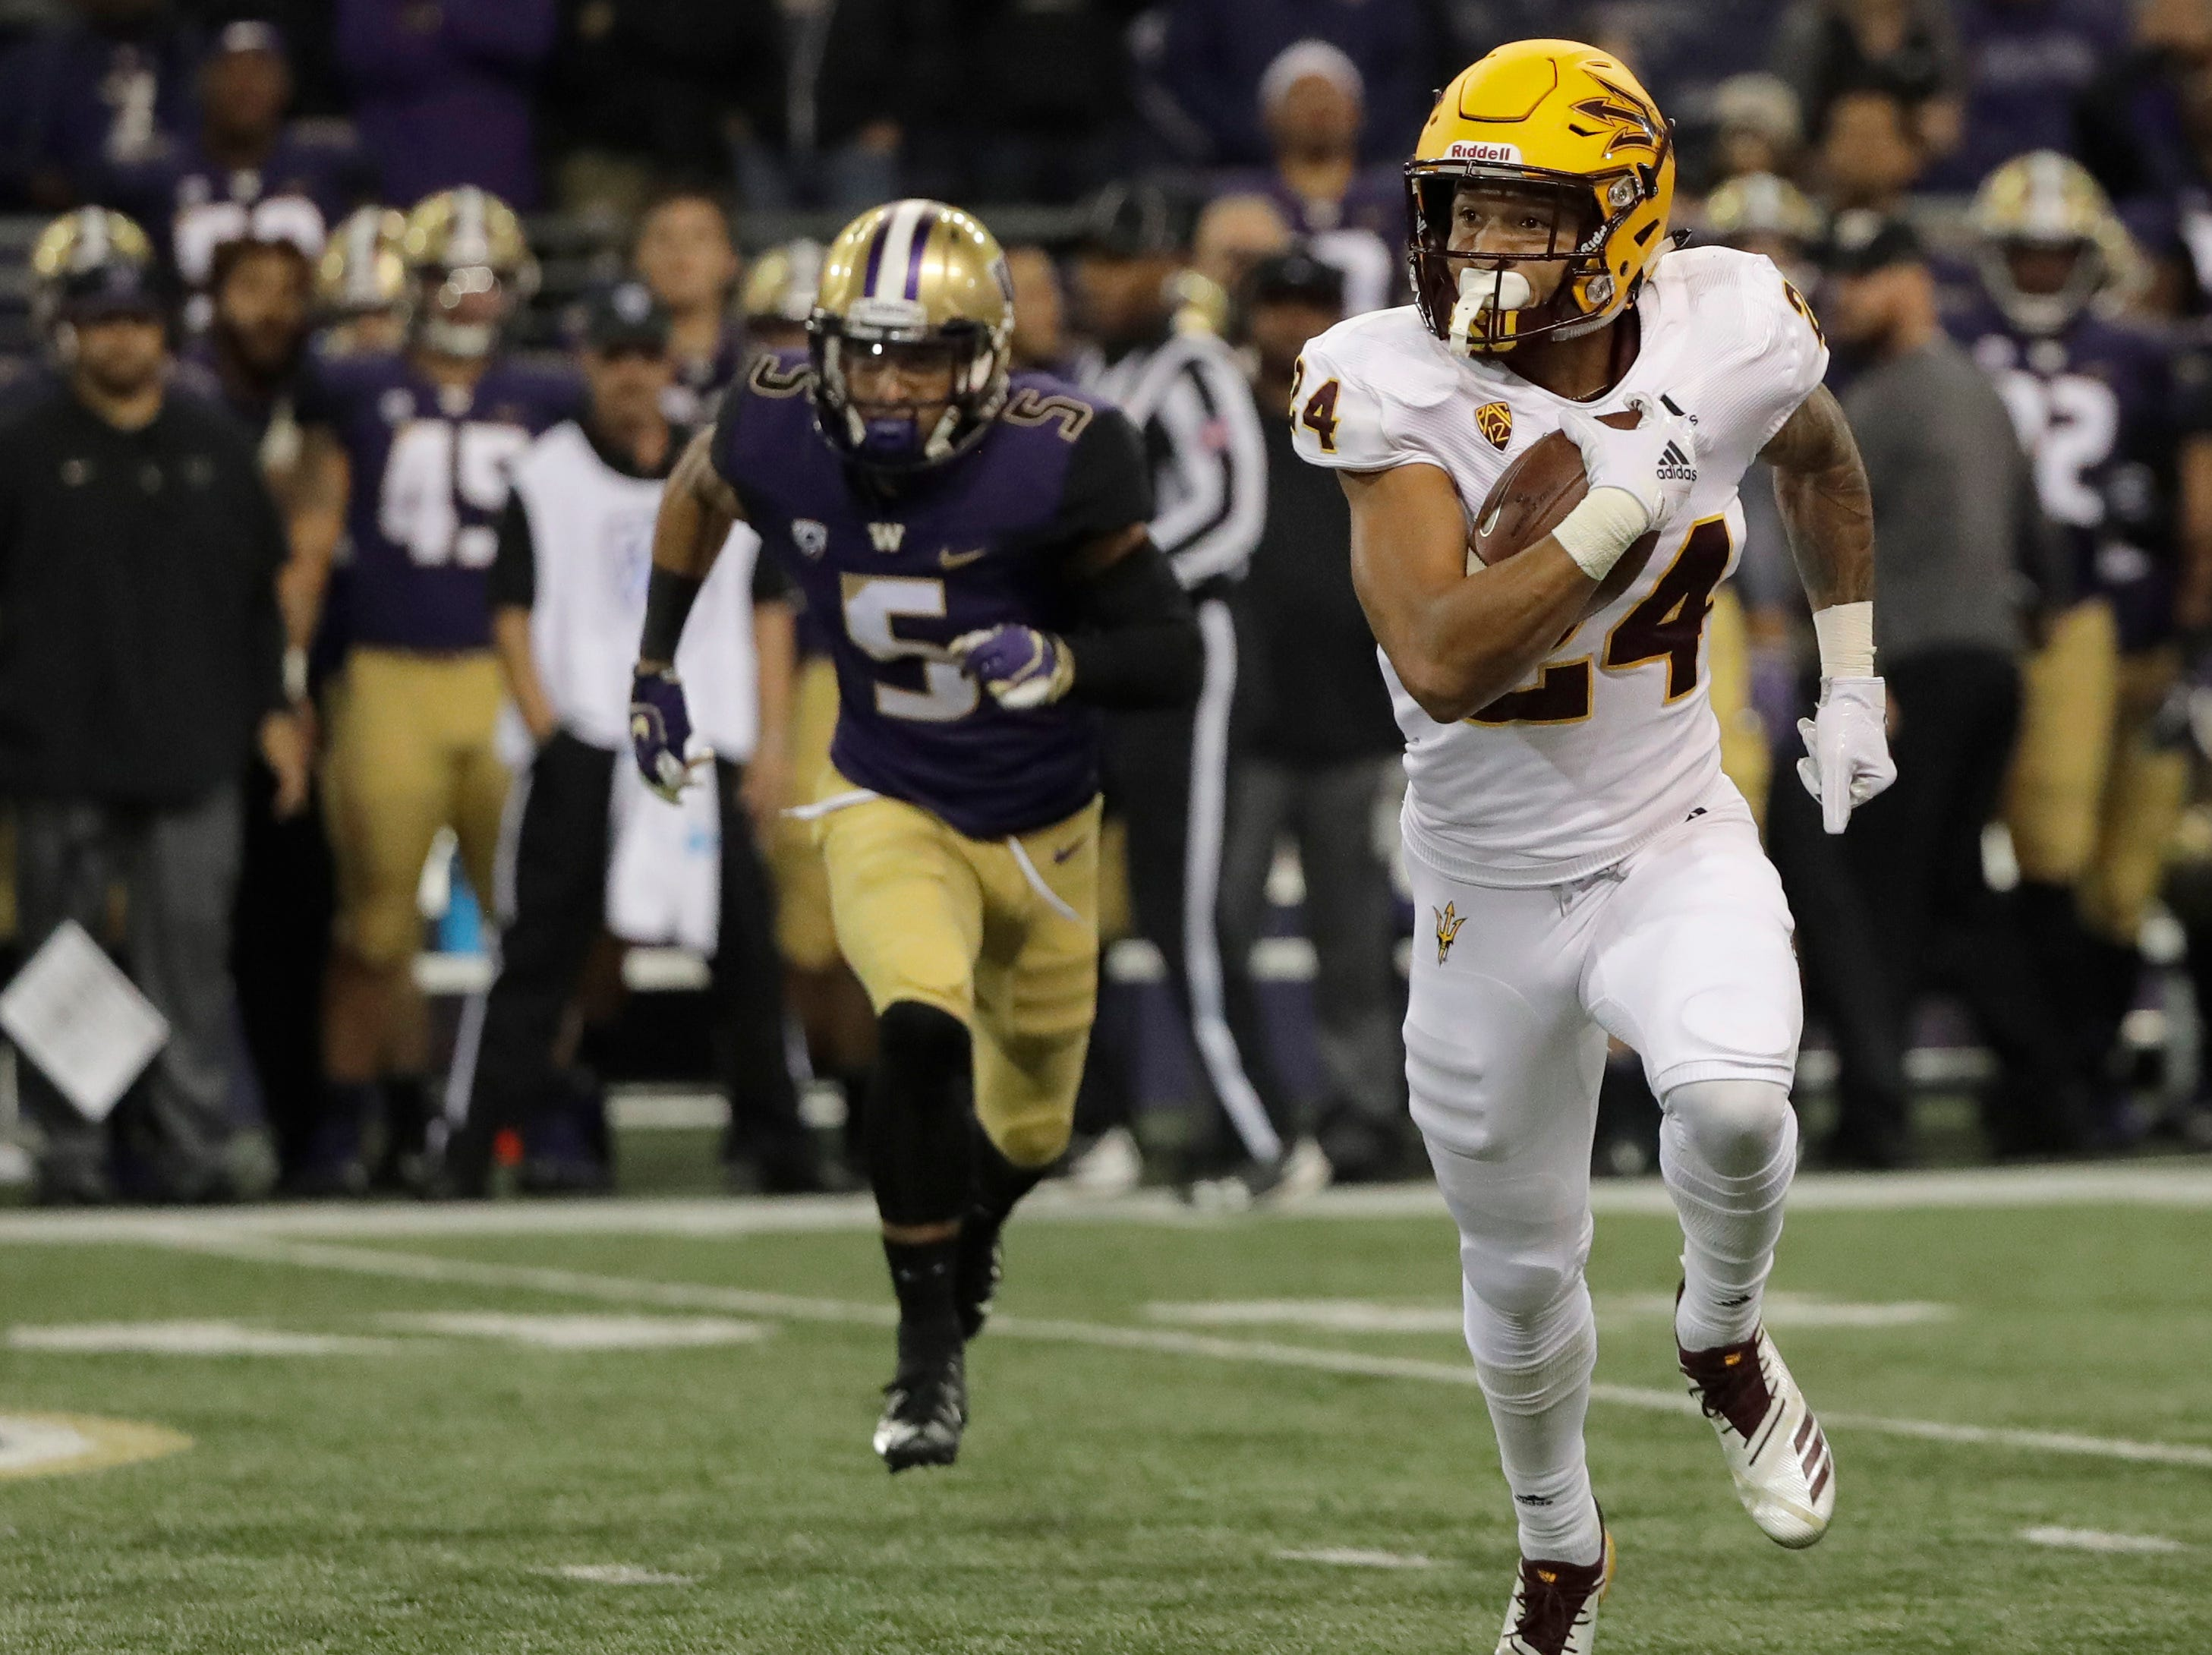 CORRECTS TO READ THAT BACCELLIA THREW THE PASS - Arizona State defensive back Chase Lucas, right, runs the ball after intercepting a pass intended from Washington wide receiver Andre Baccellia (5) during the first half of an NCAA college football game Saturday, Sept. 22, 2018, in Seattle.